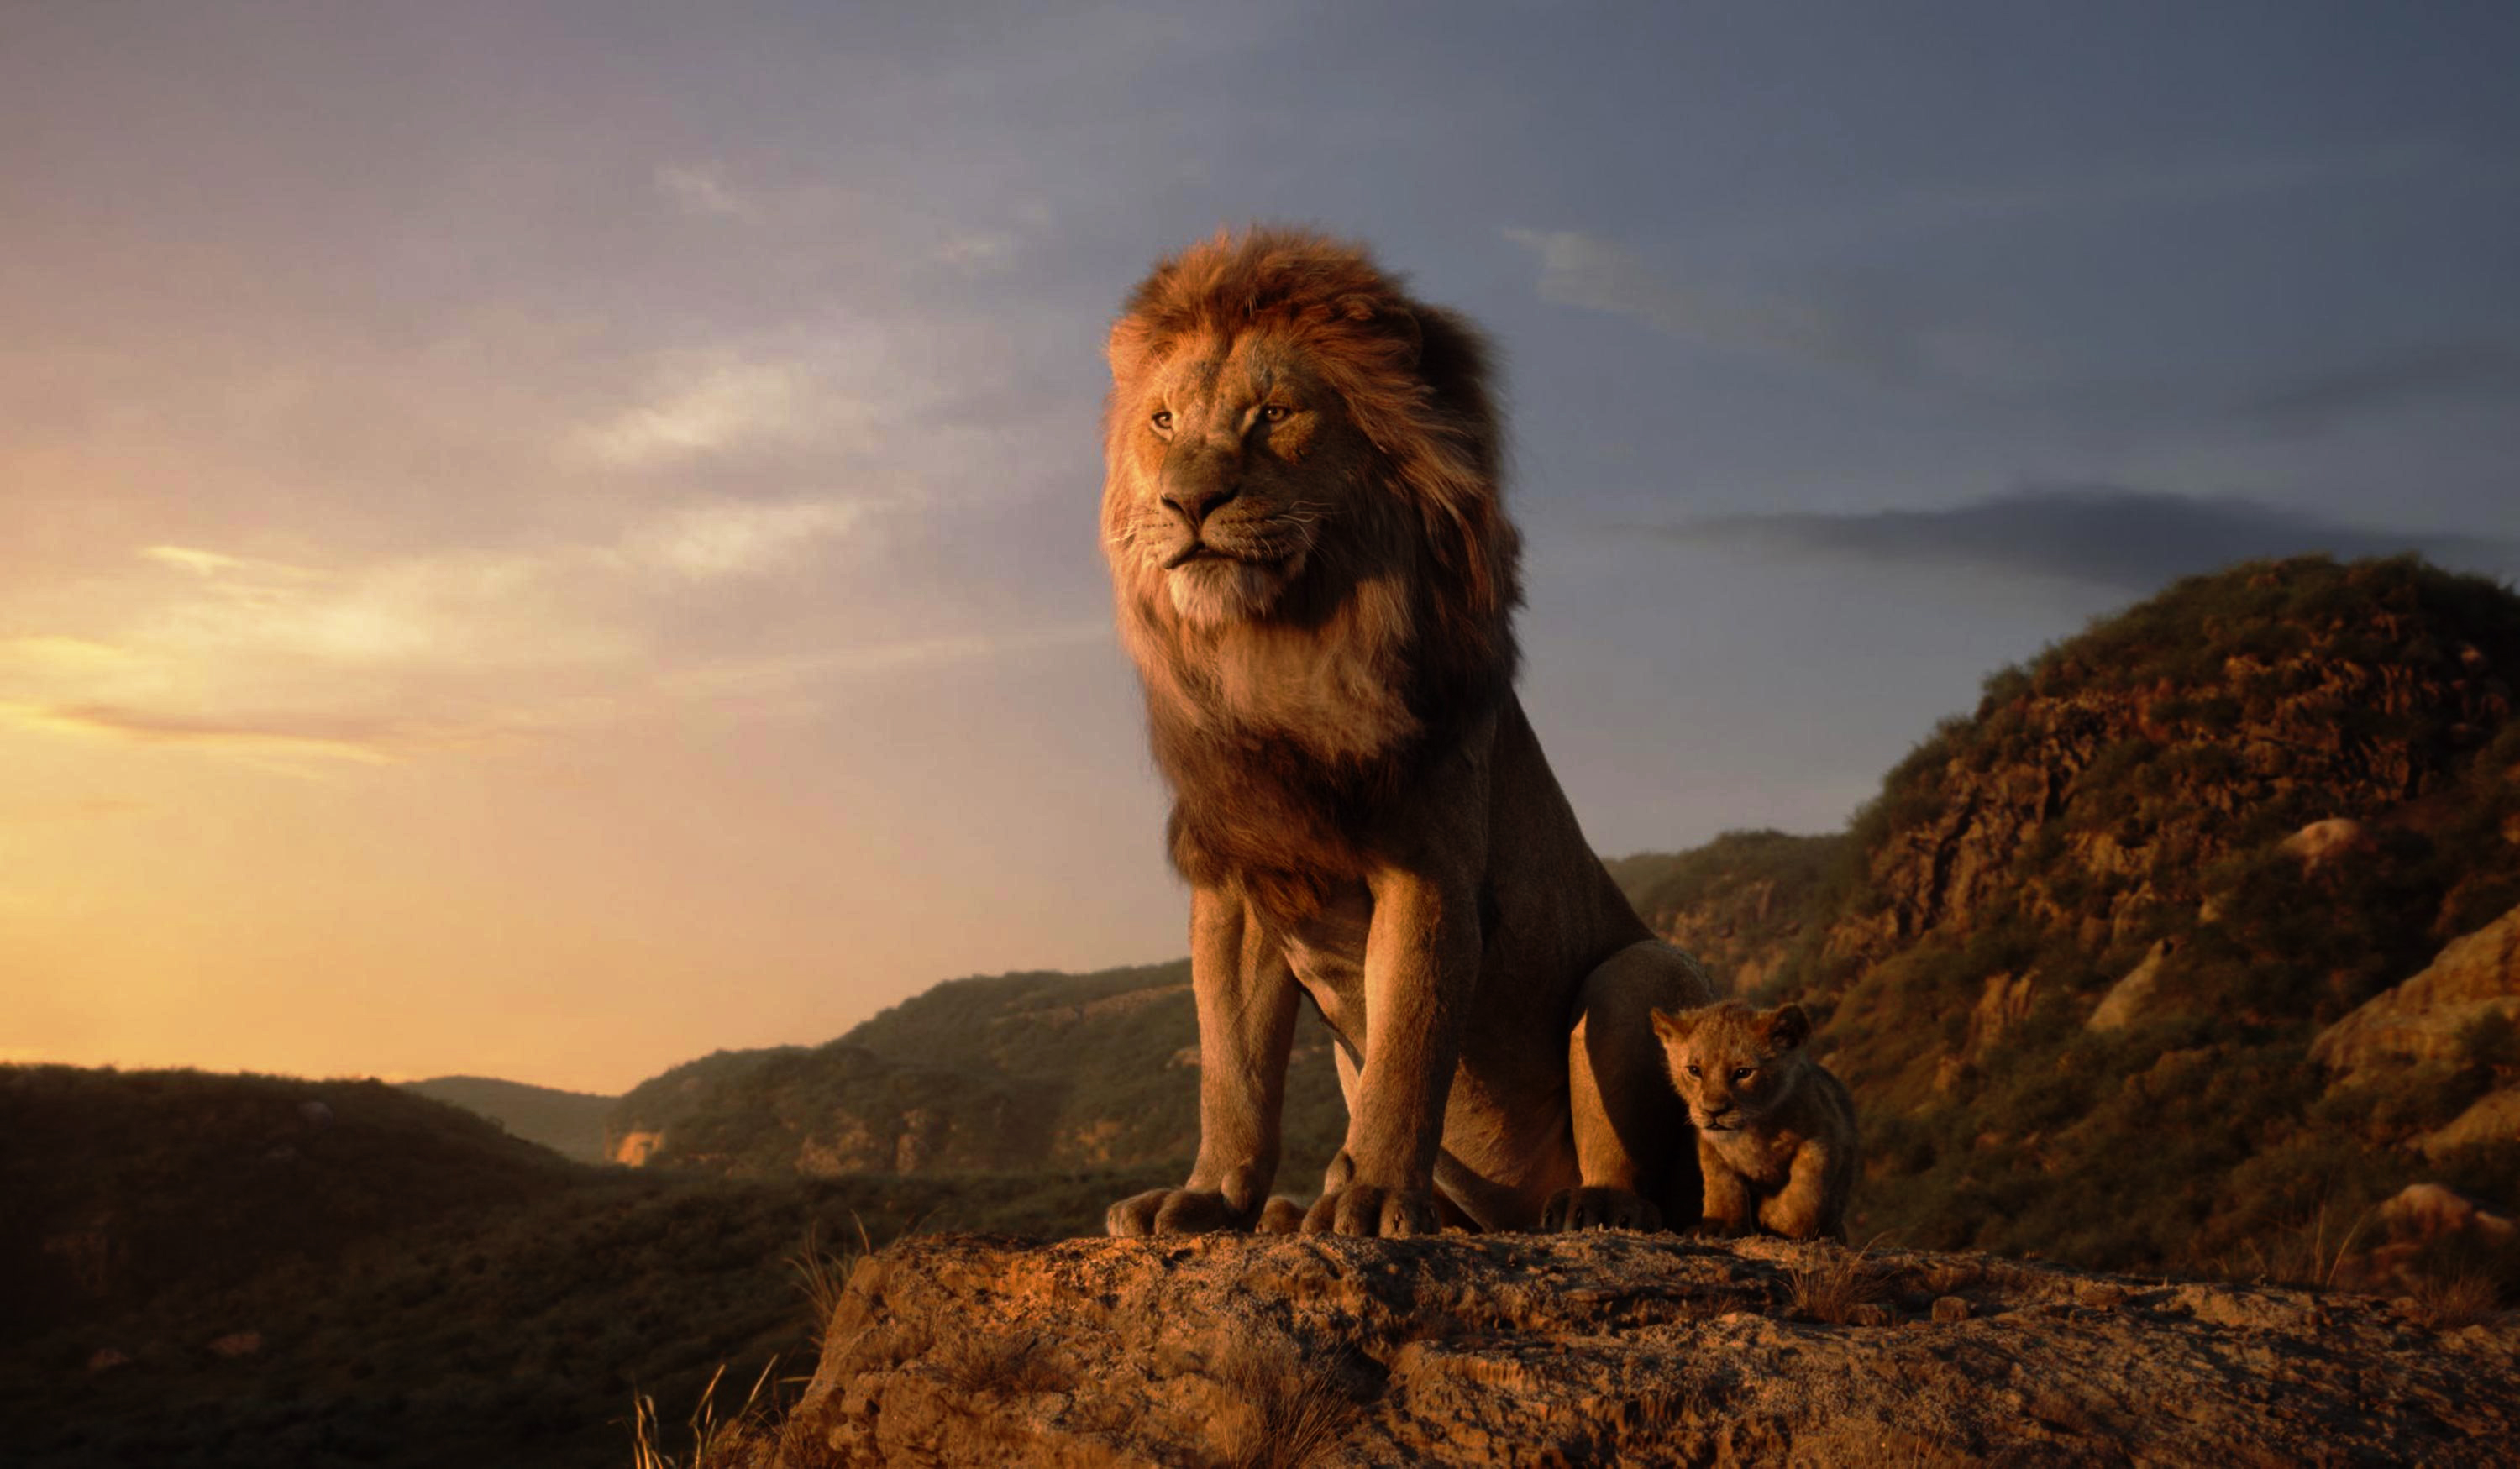 The lion king 4k hd movies 4k wallpapers images - Lion 4k wallpaper for mobile ...